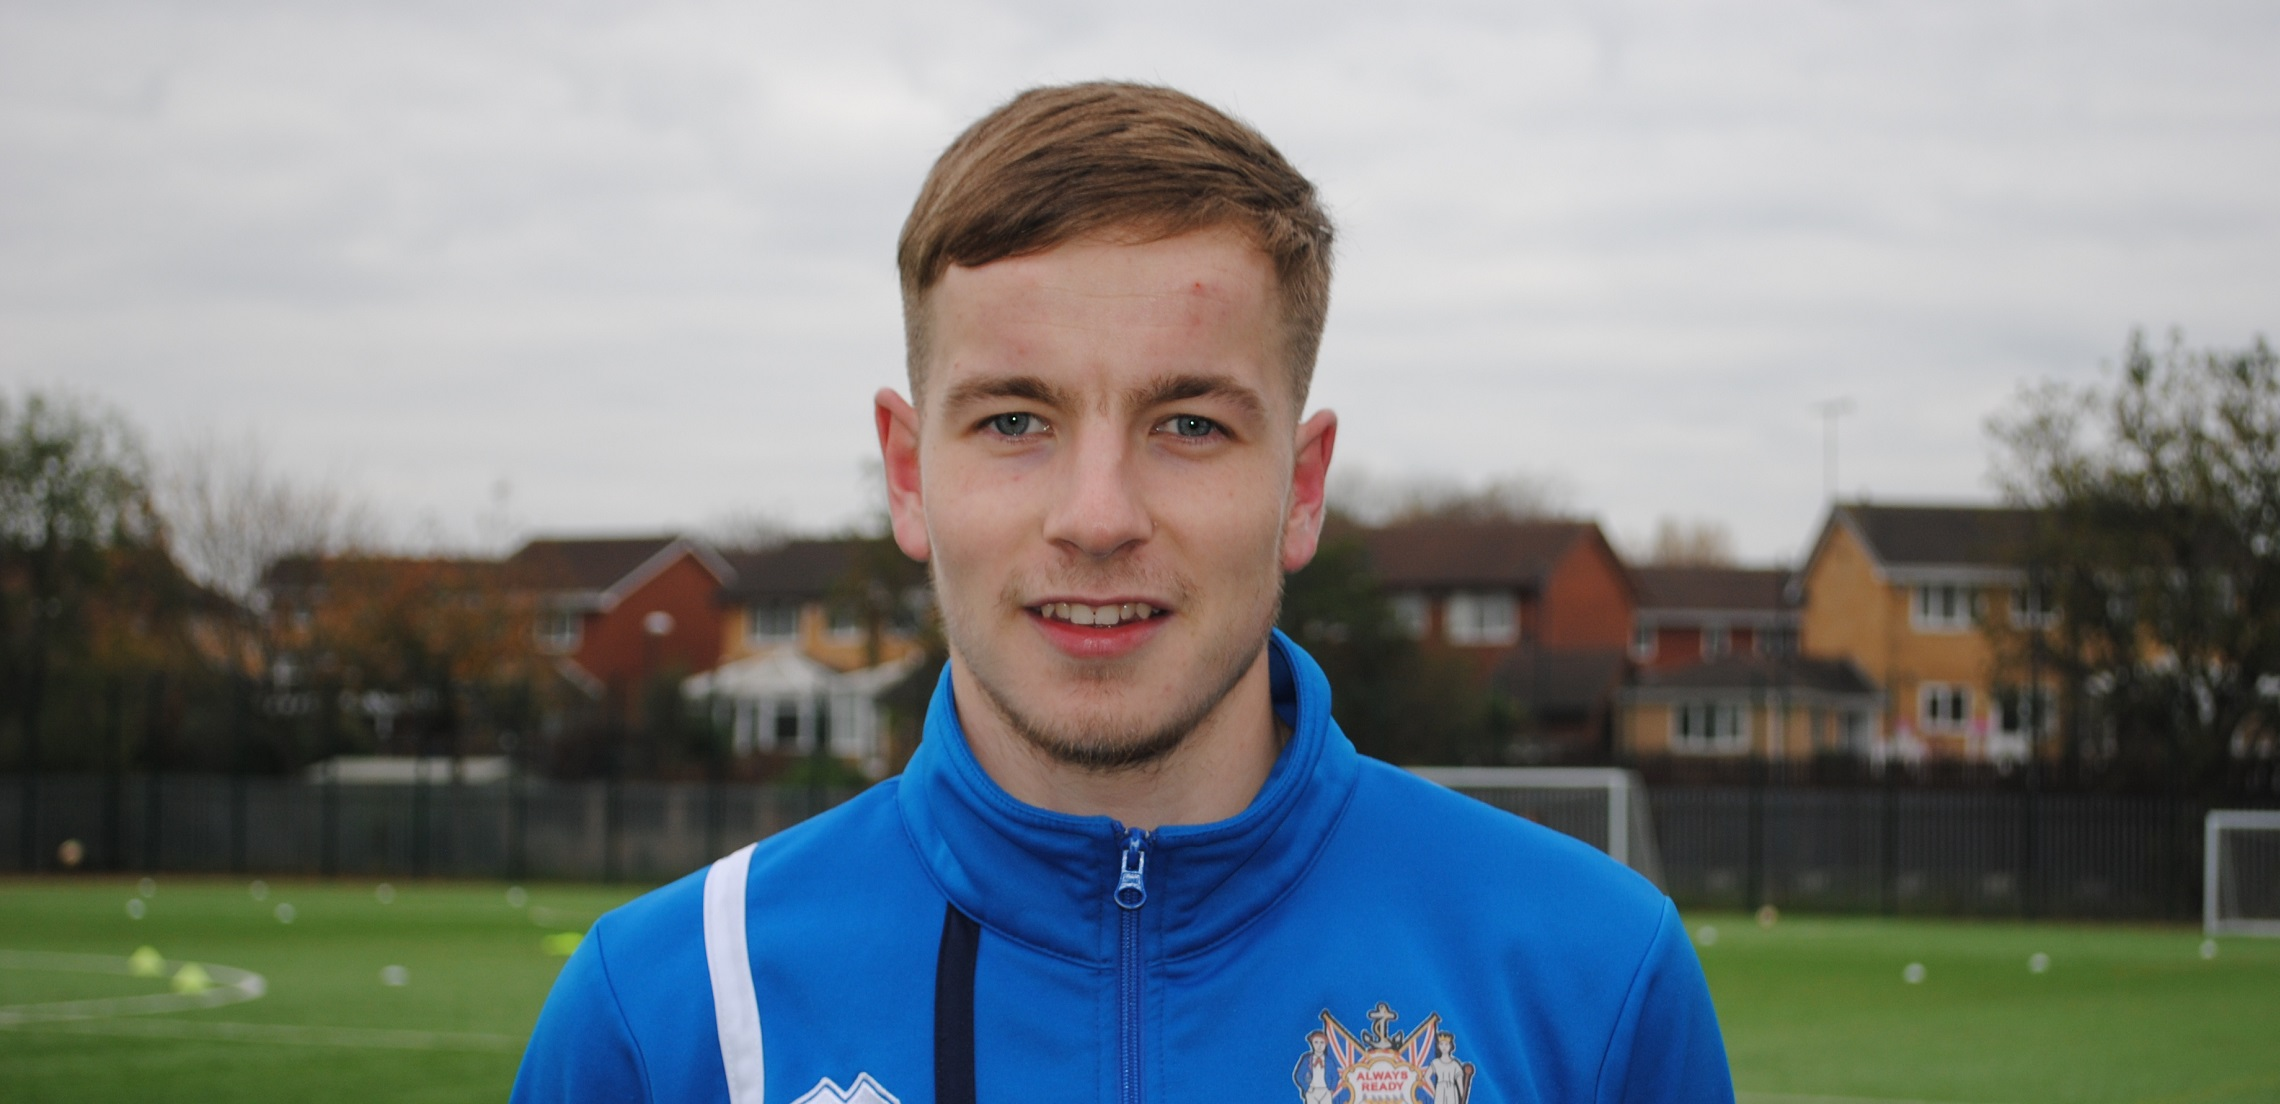 Thumping win for SSFC Academy as Lowther nets four